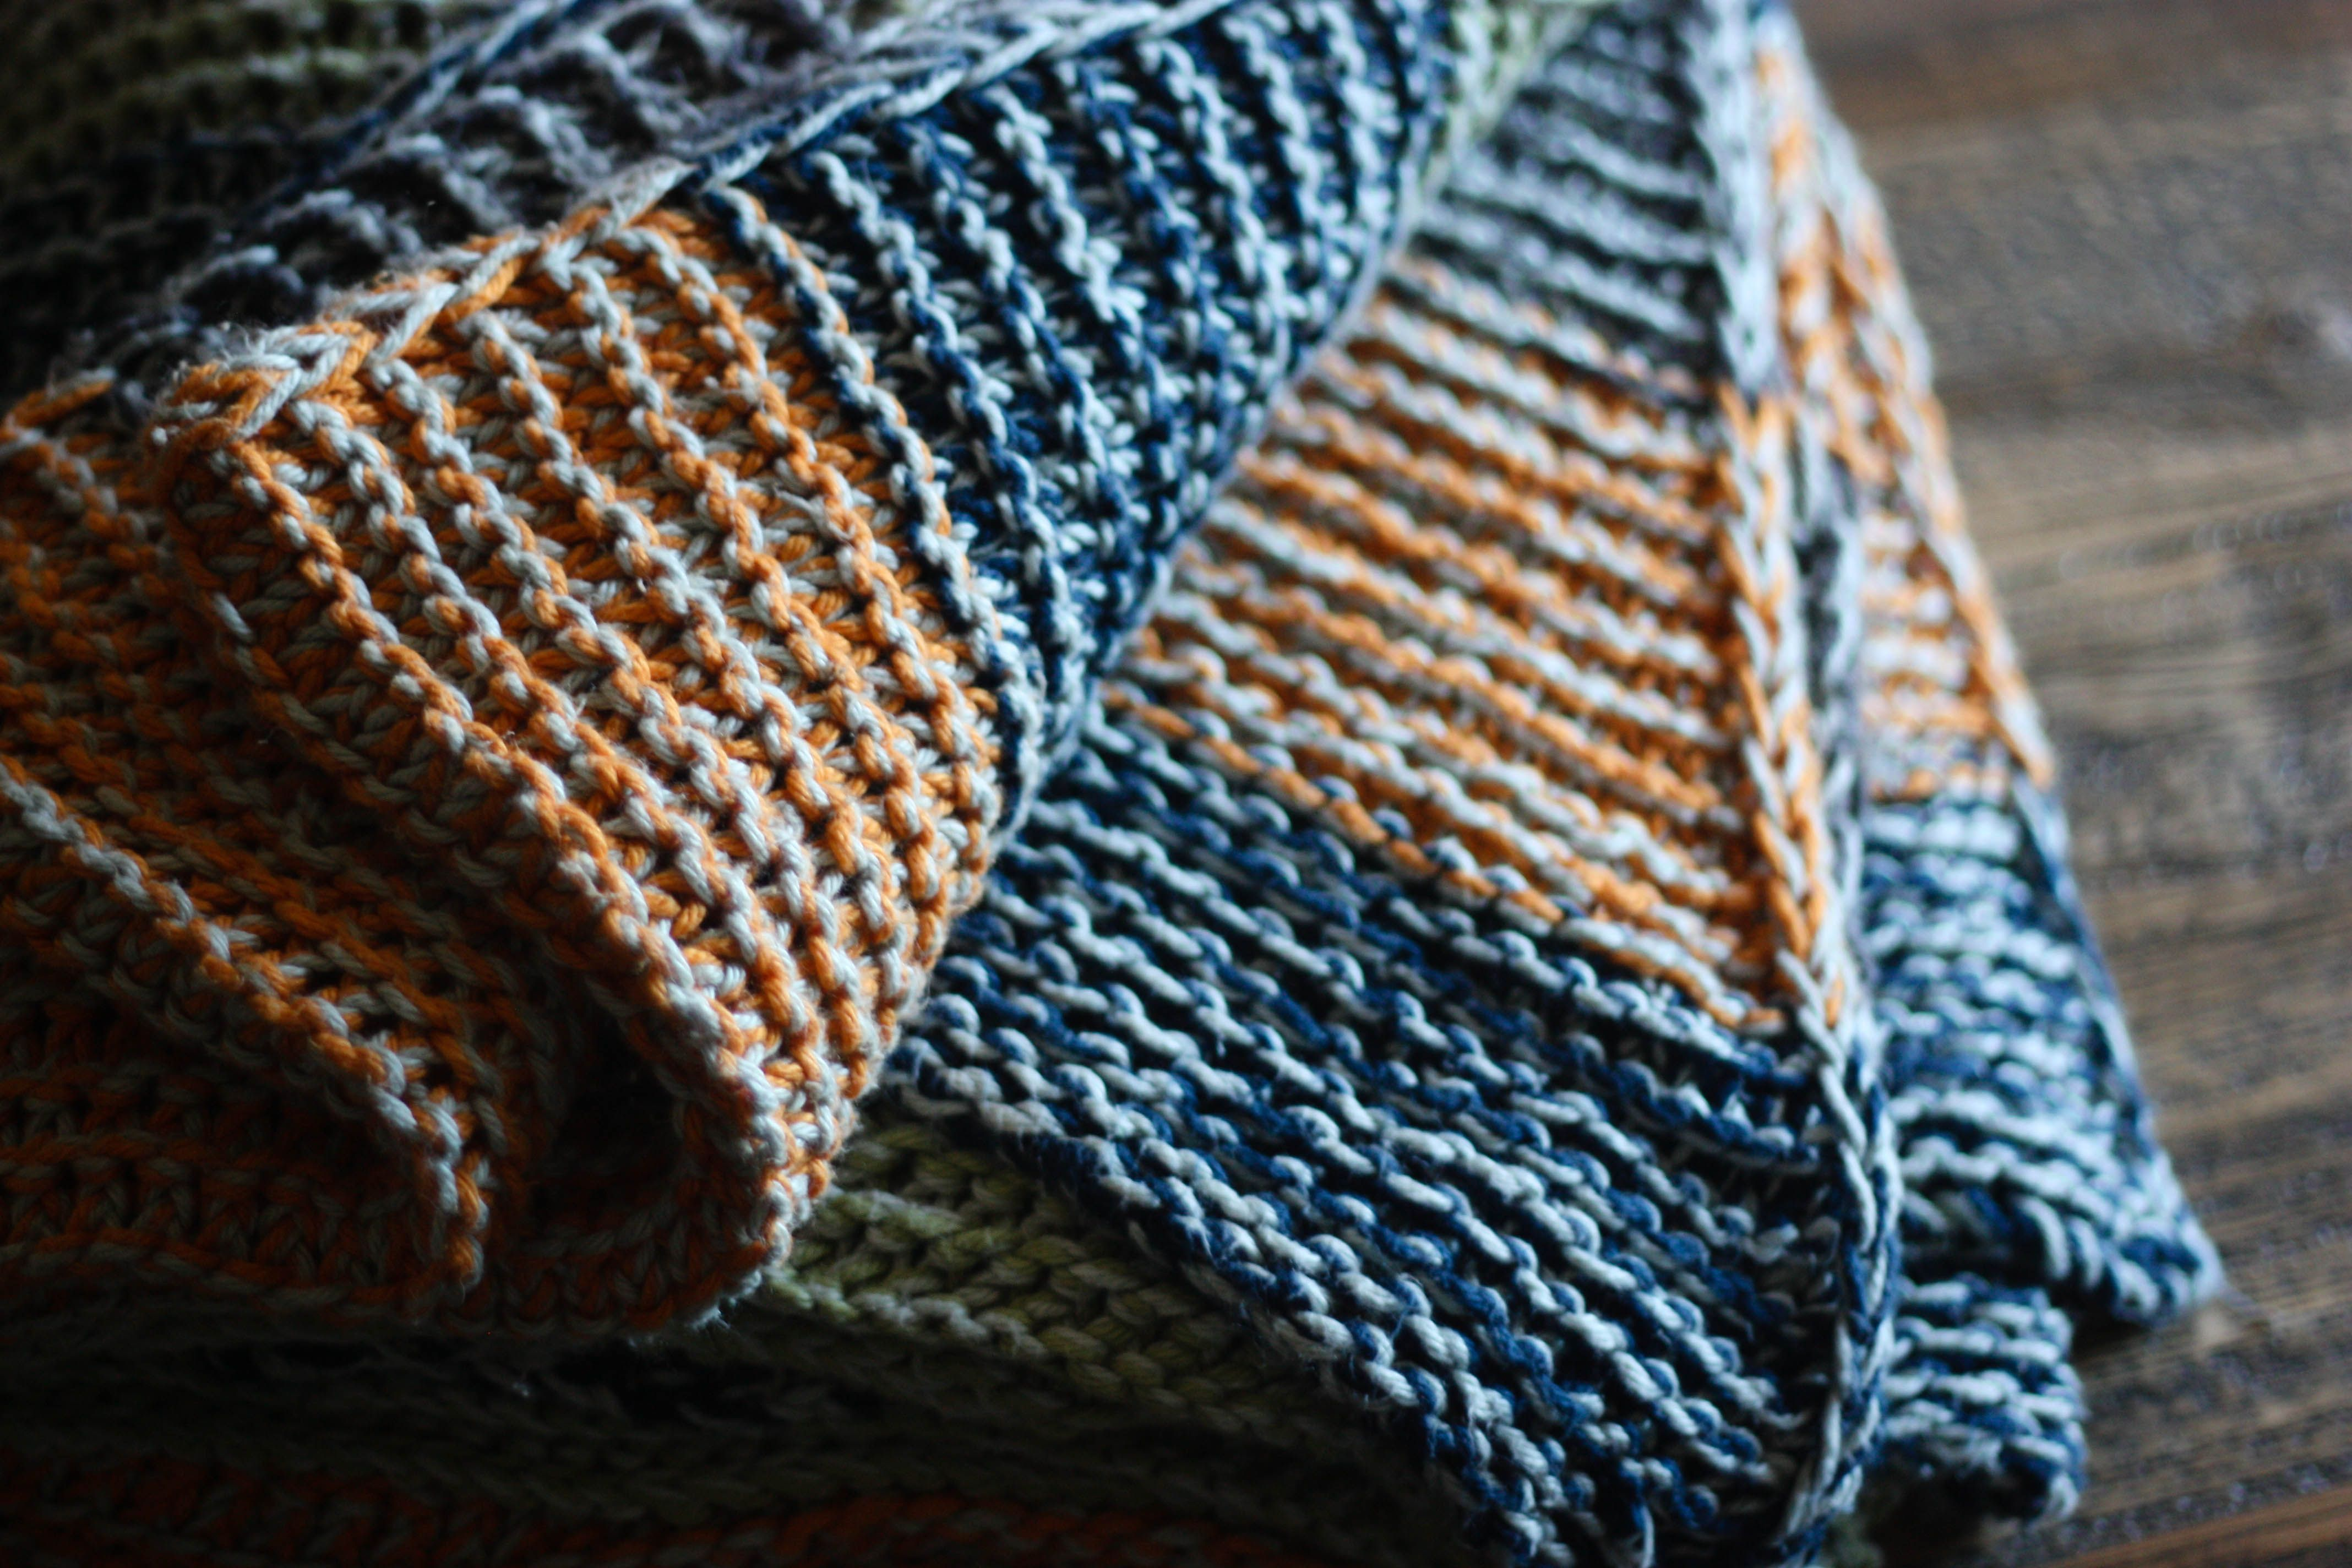 Knitting A Blanket On Circular Needles : Yard of yarn worsted weight skeins silver